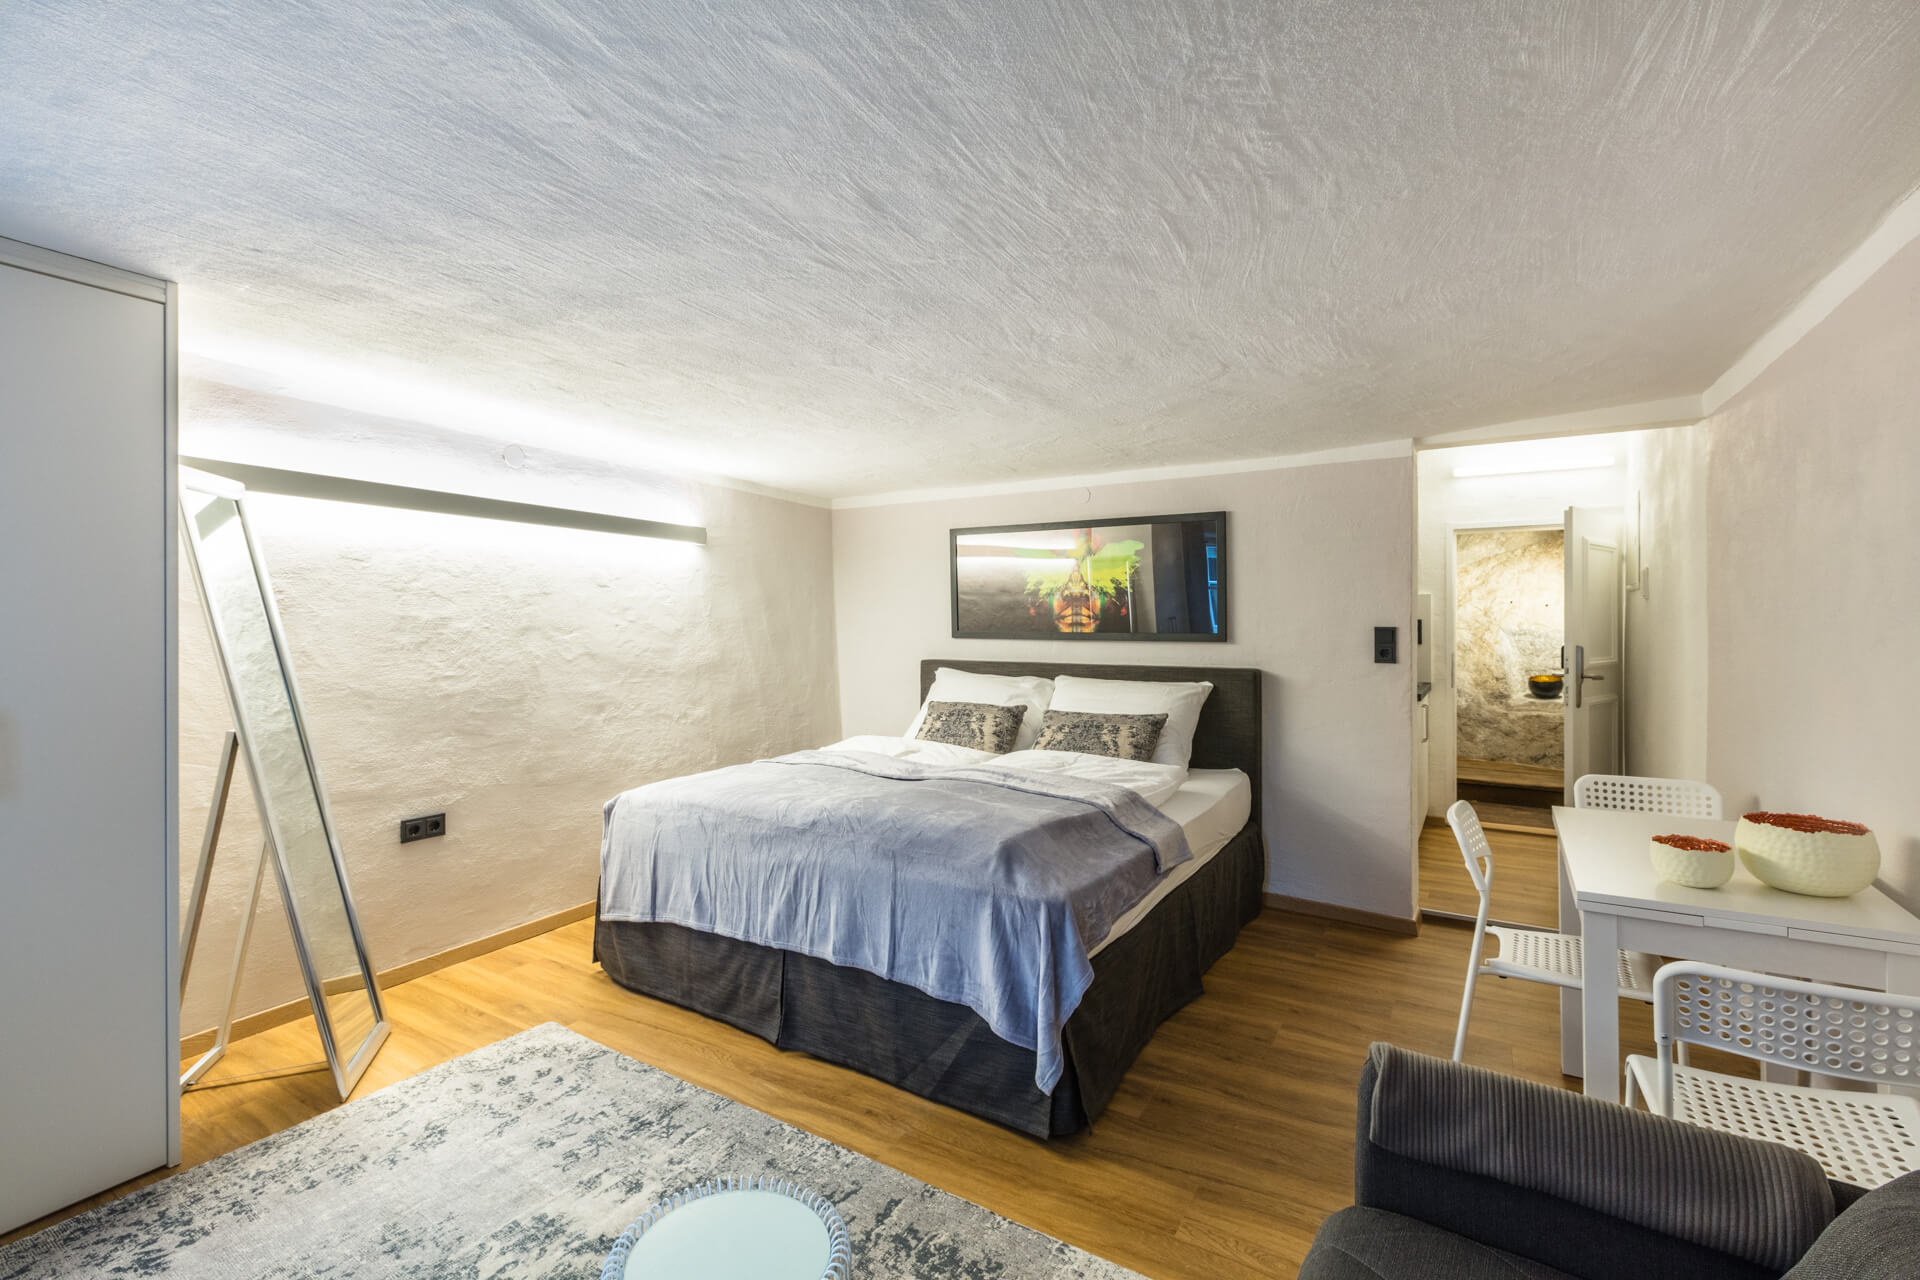 The SILVER APARTMENT with views of the fortress is about 25 m² in size and is located on the 2nd floor of Stone Lodge.